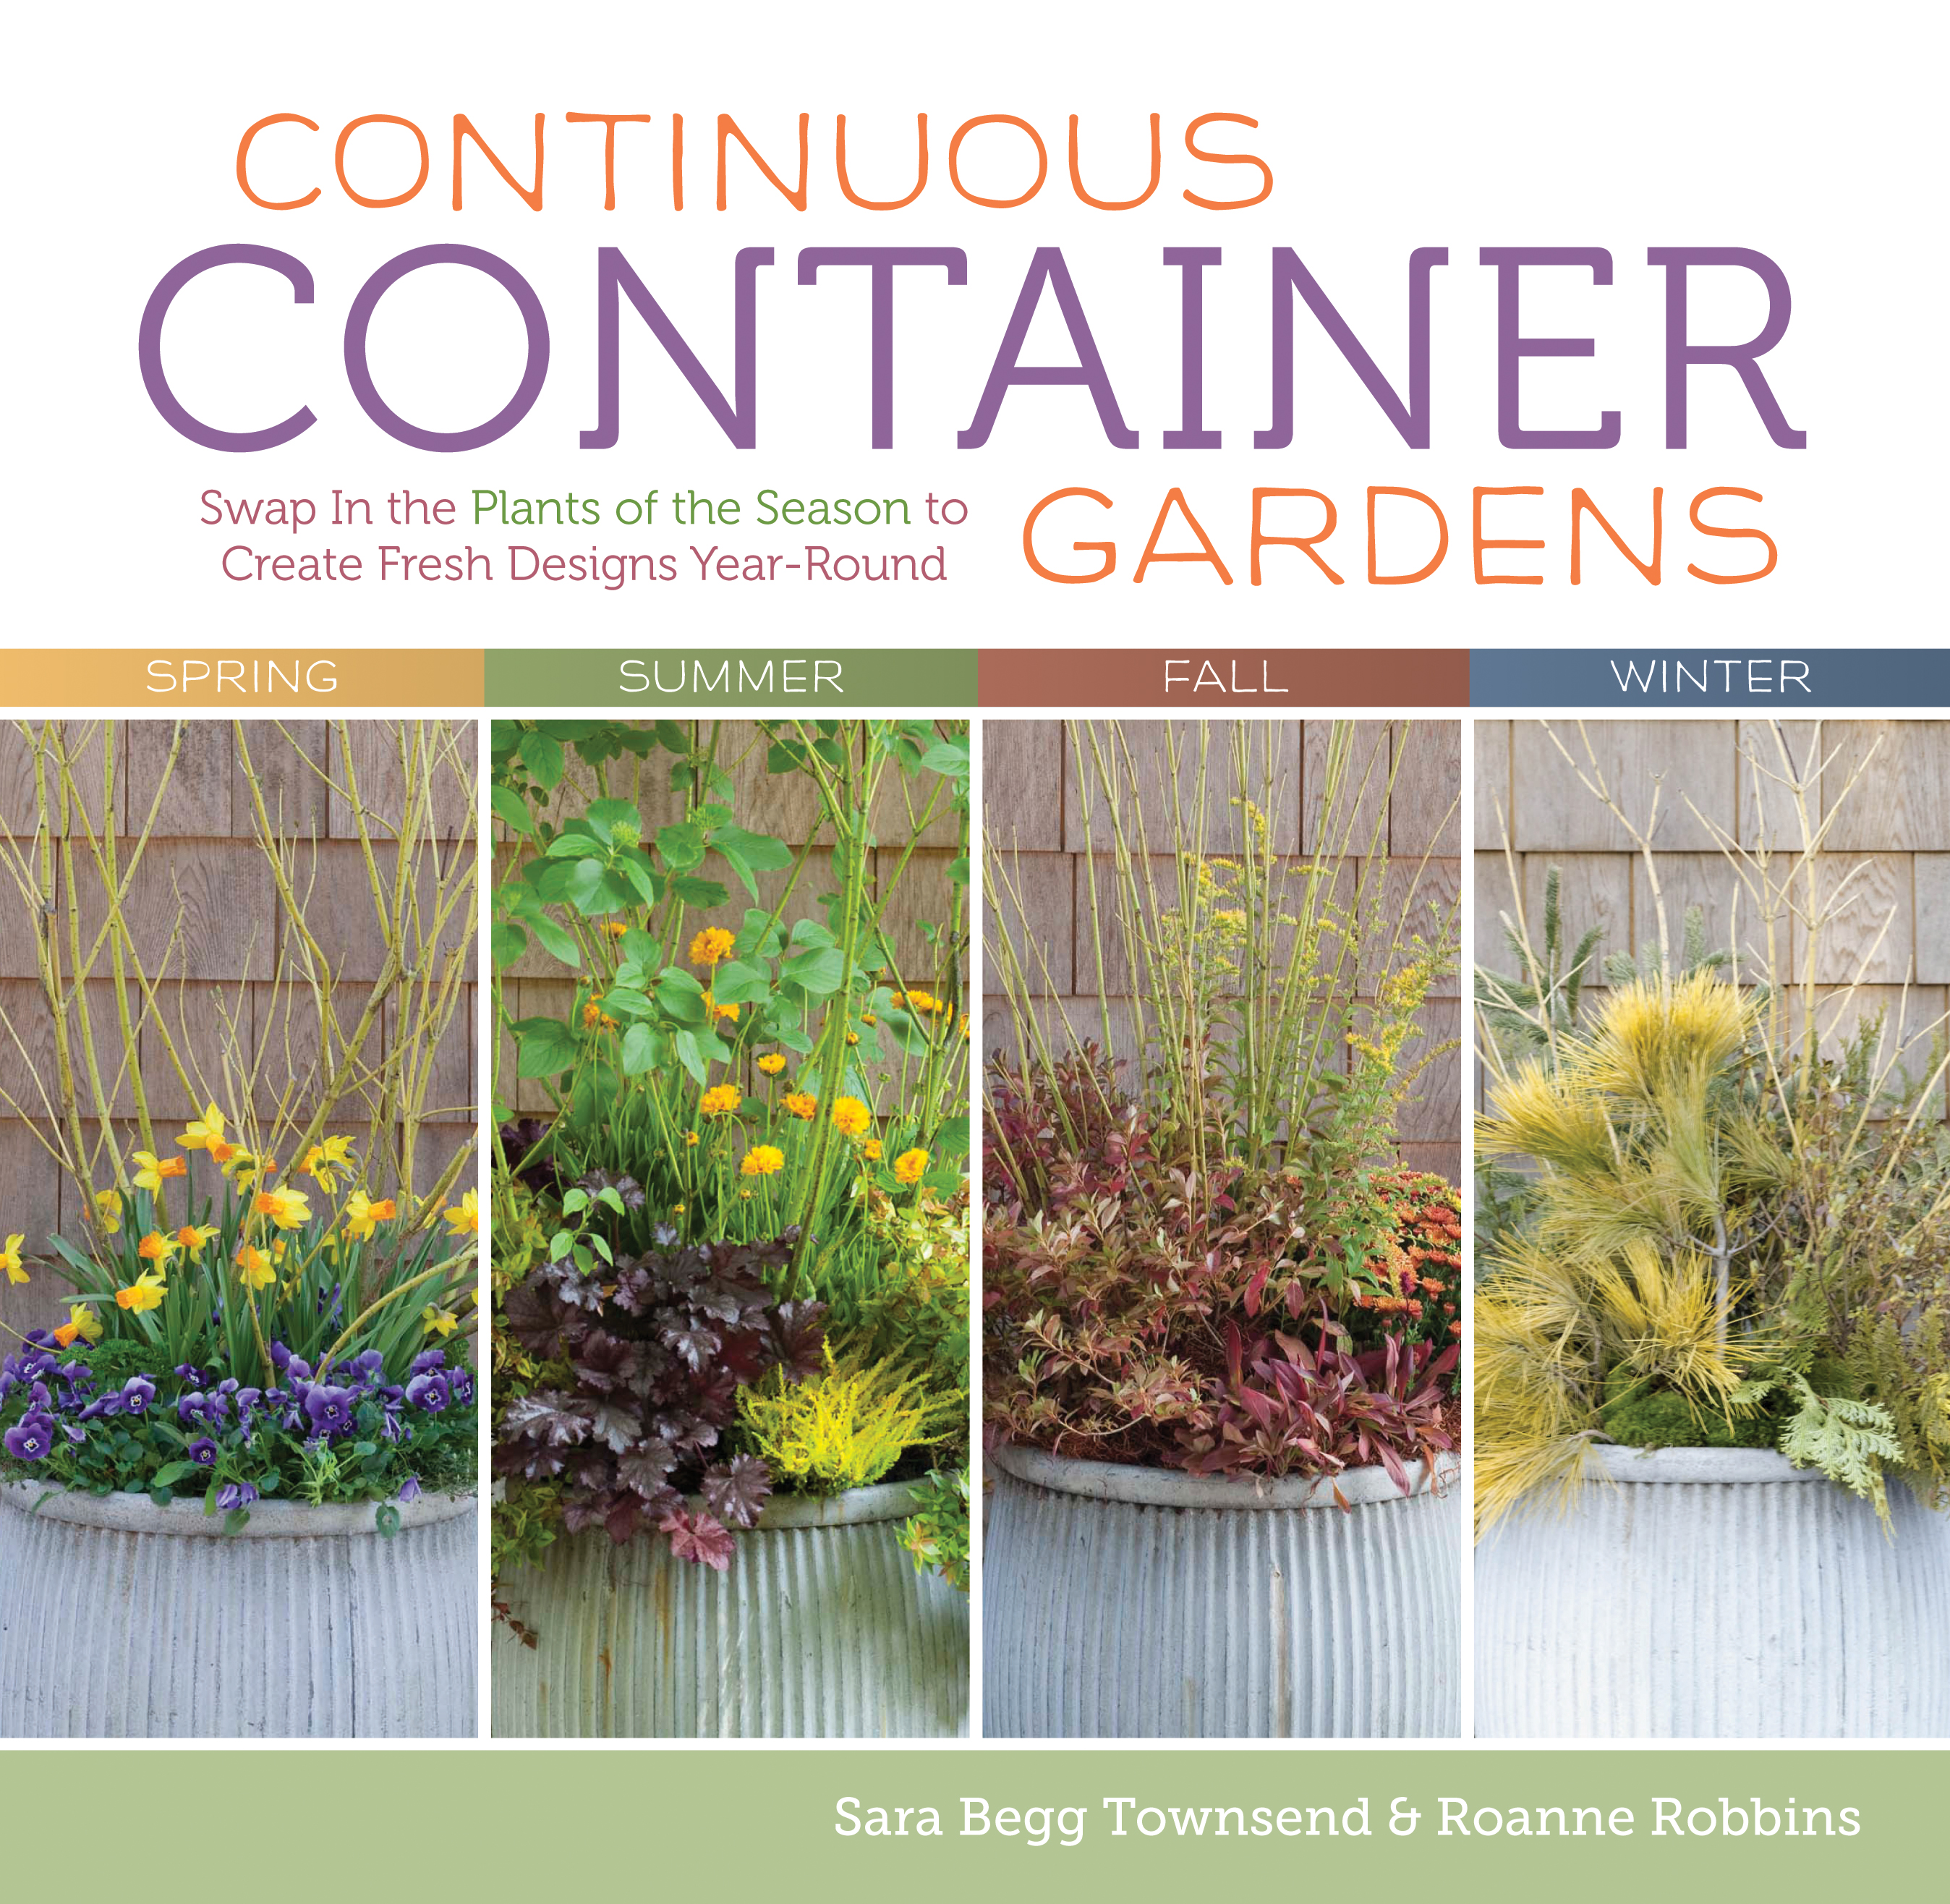 Continuous Container Gardens Swap In the Plants of the Season to Create Fresh Designs Year-Round - Roanne Robbins